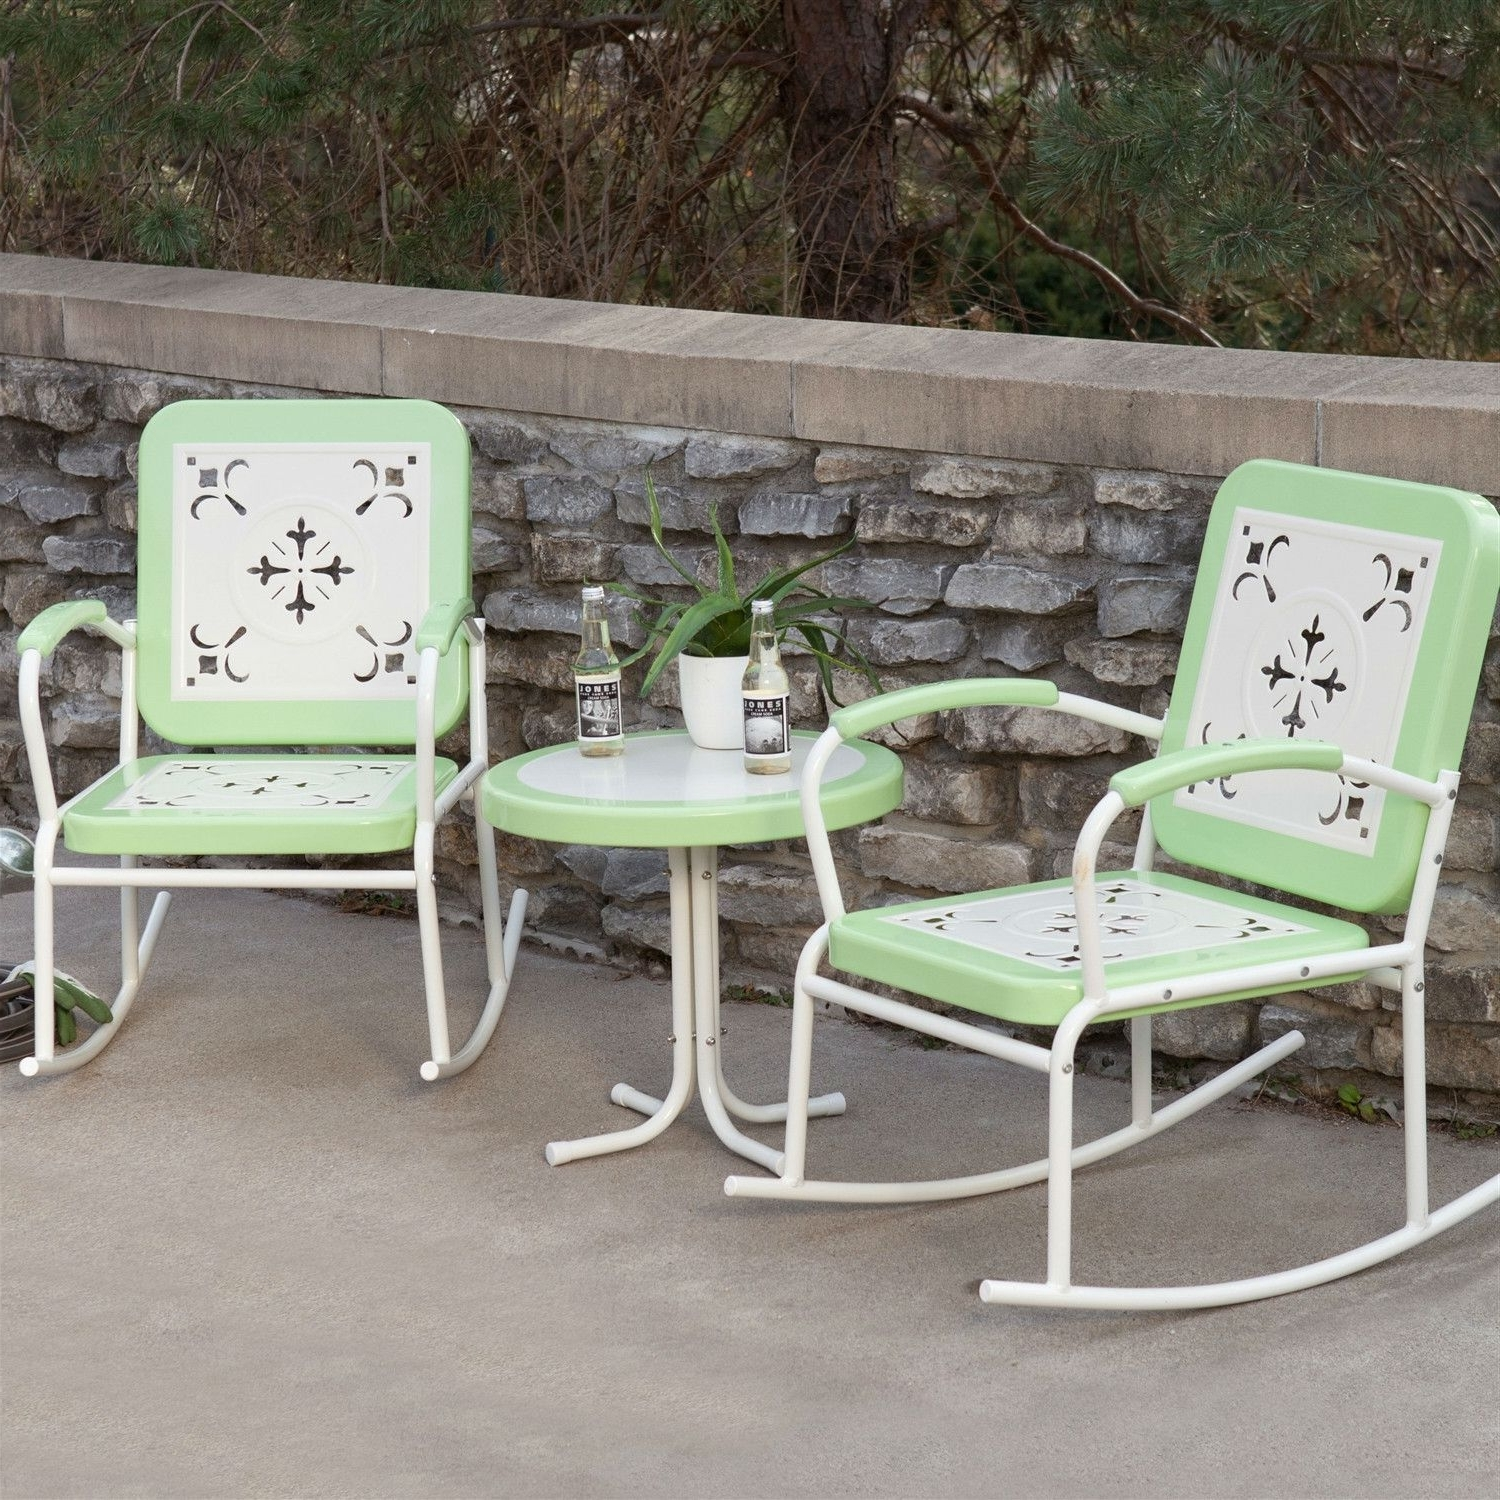 New Throughout Widely Used Outside Rocking Chair Sets (View 7 of 15)